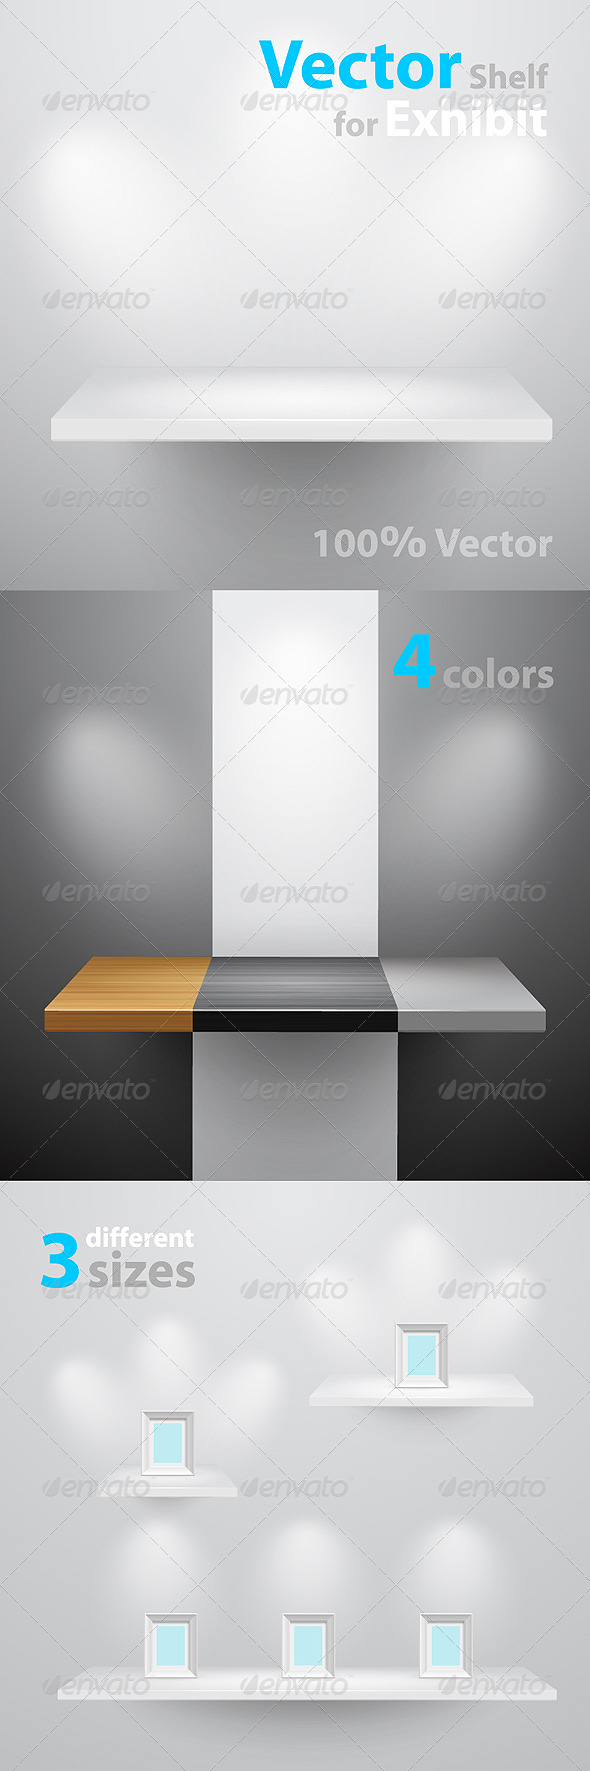 GraphicRiver Vector shelf for exhibition 236313